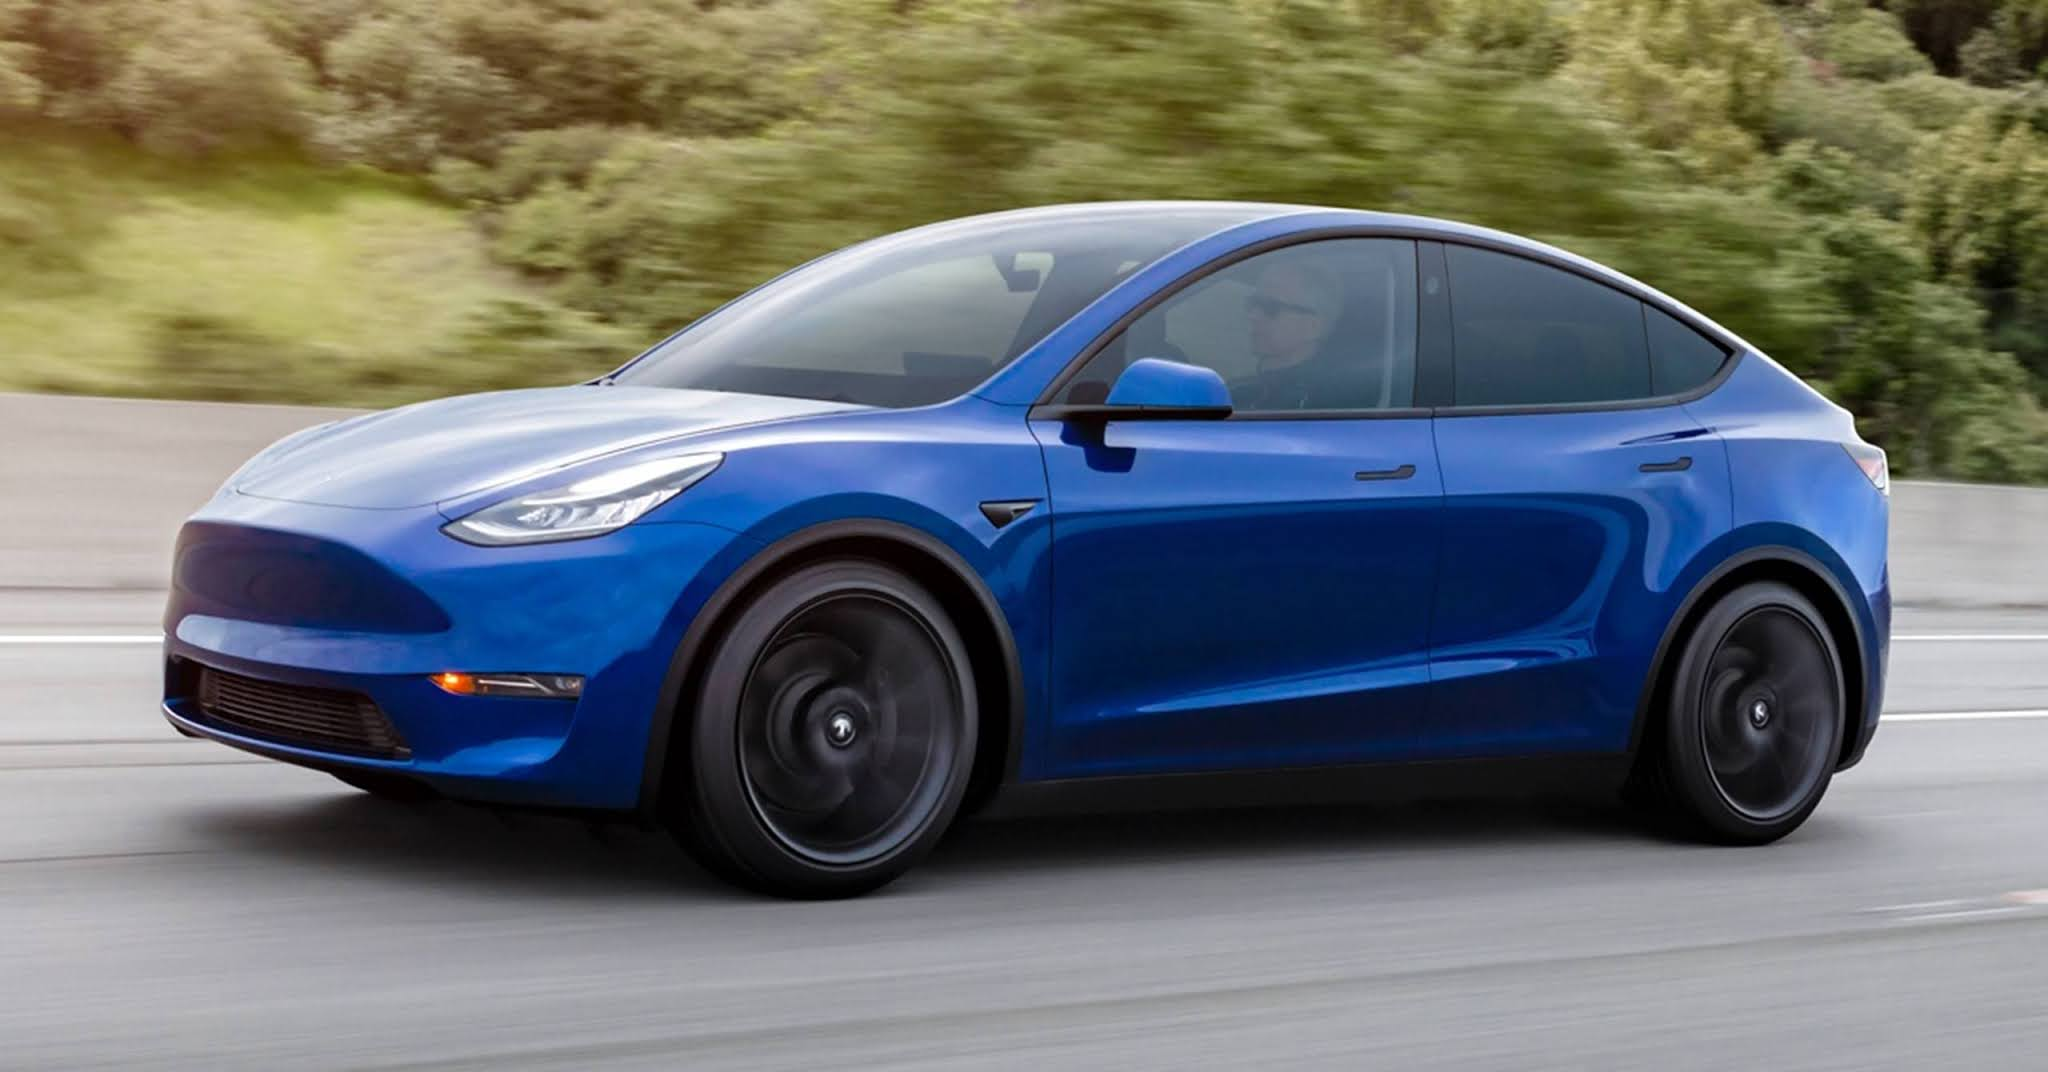 Tesla Model Y será o carro mais vendido do mundo, segundo Elon Musk